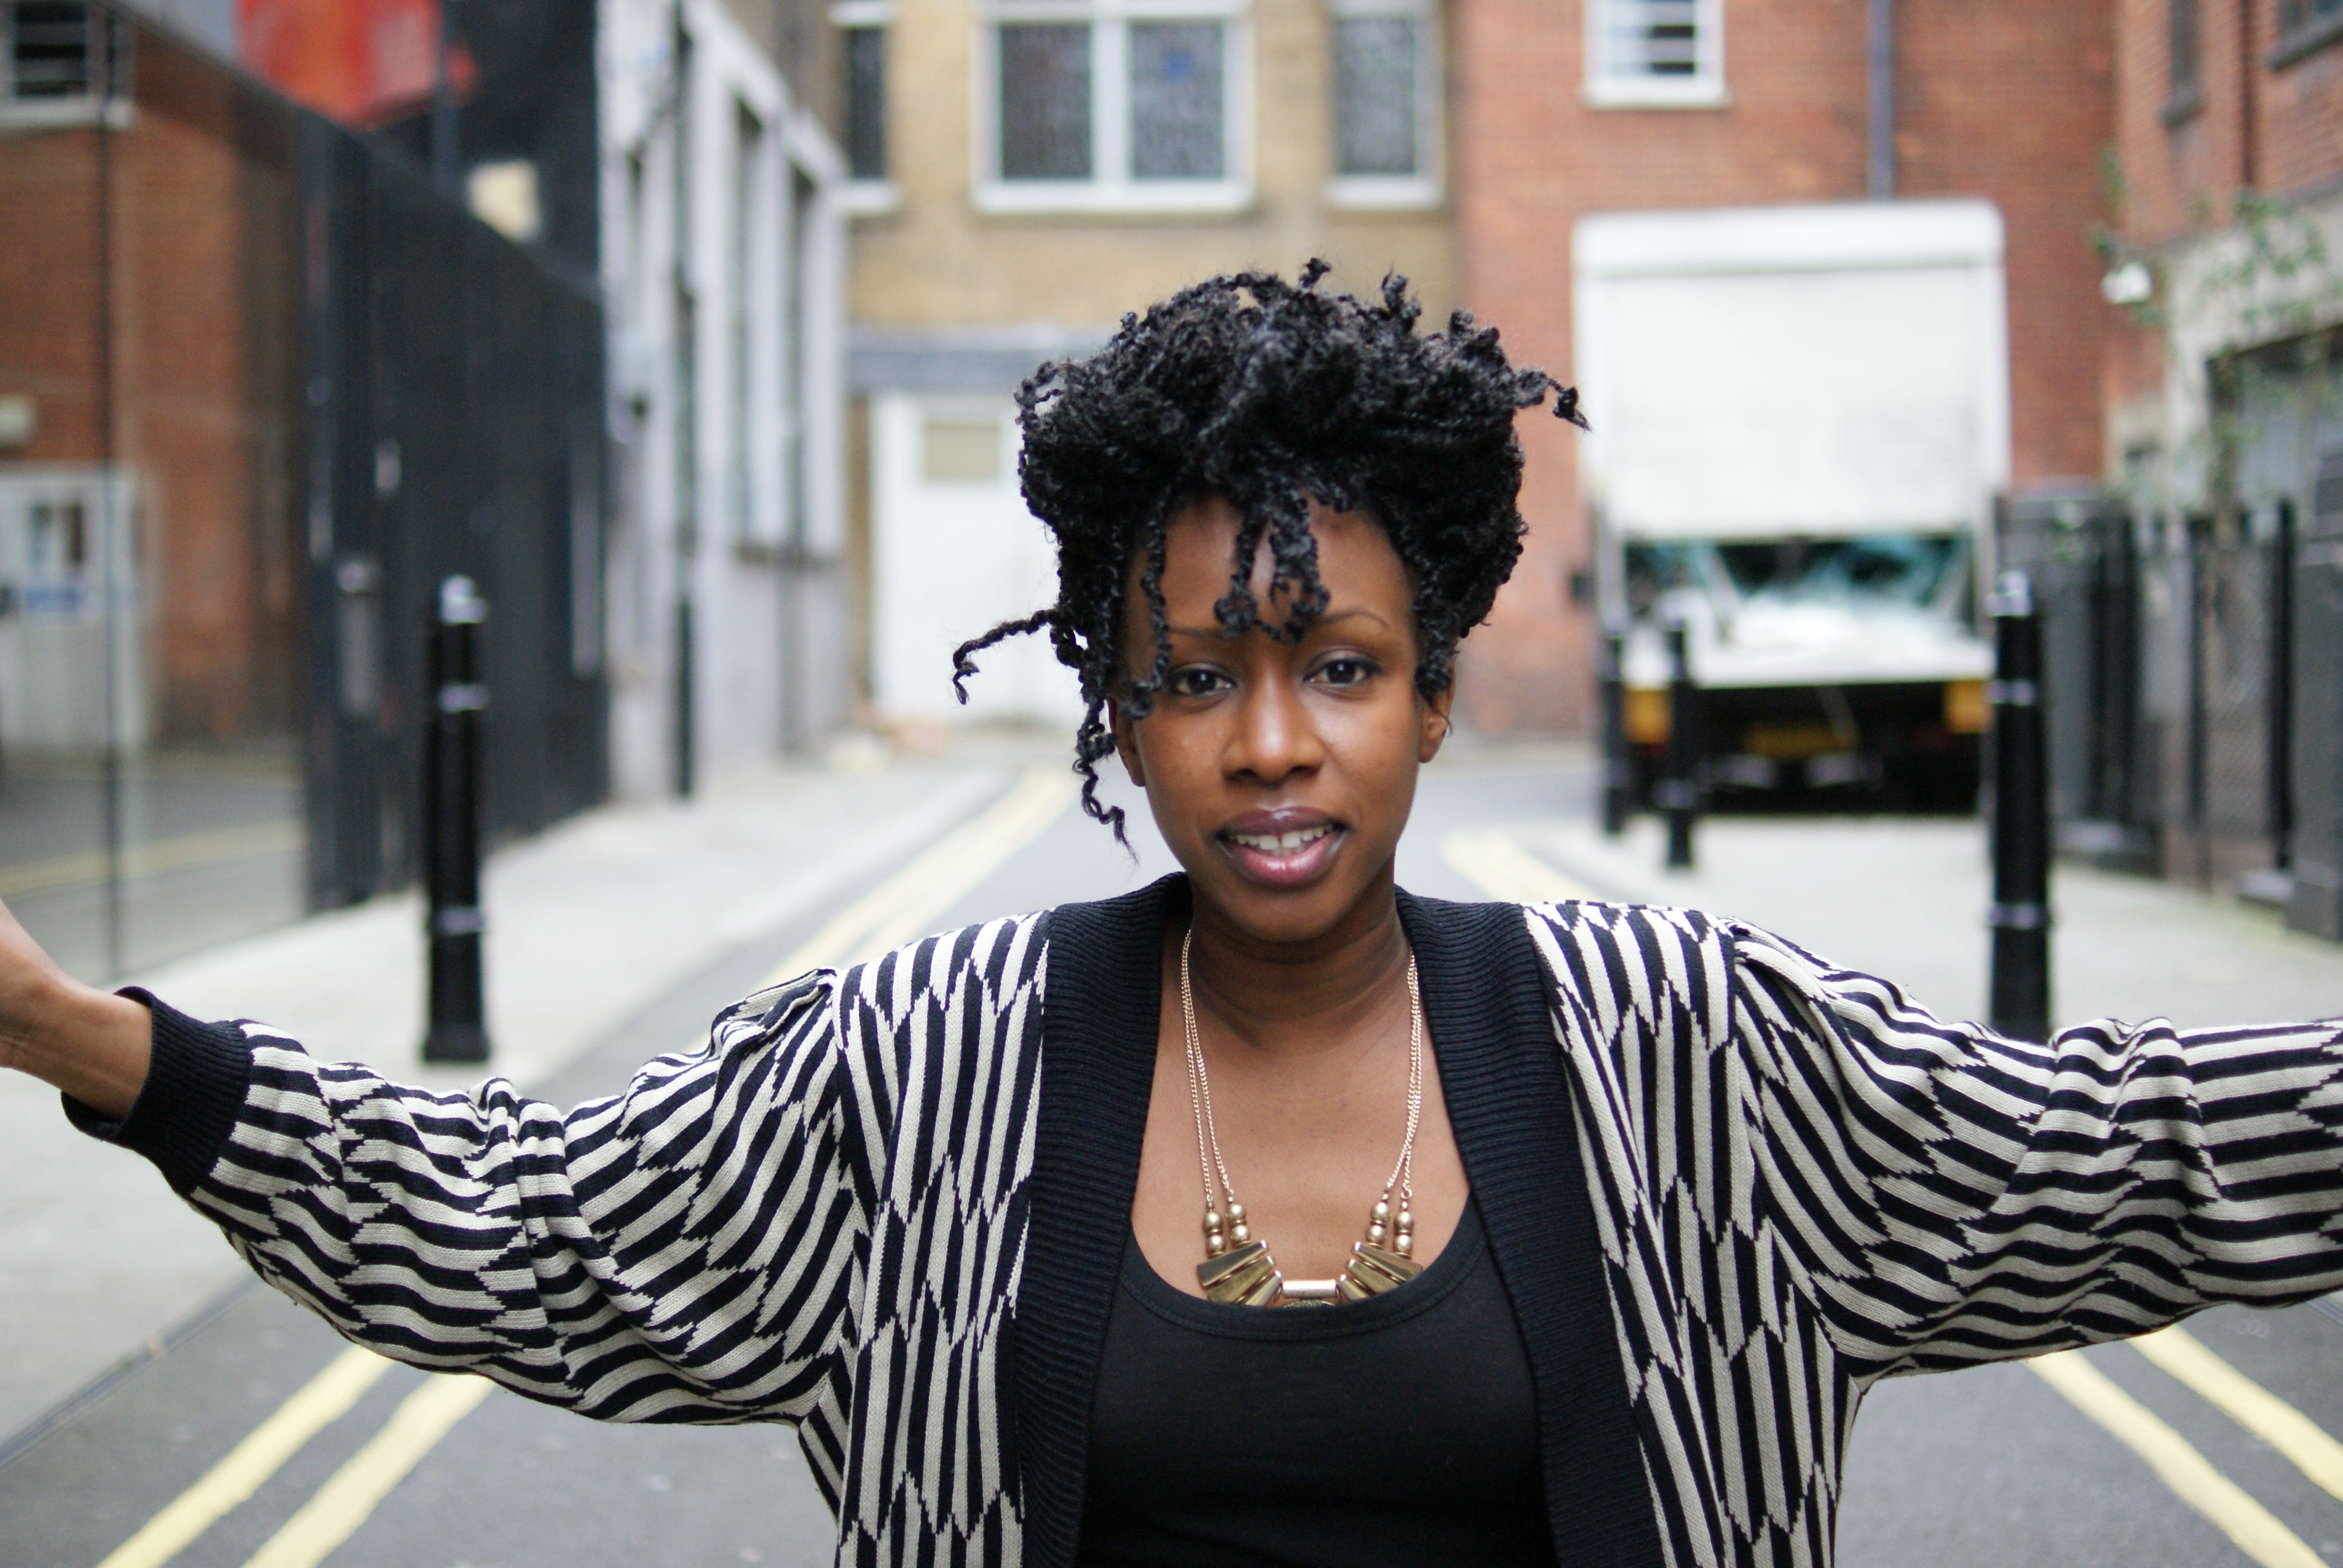 Meet The Girl Who Went Viral For Singing About The Struggle Of Life As A Londoner